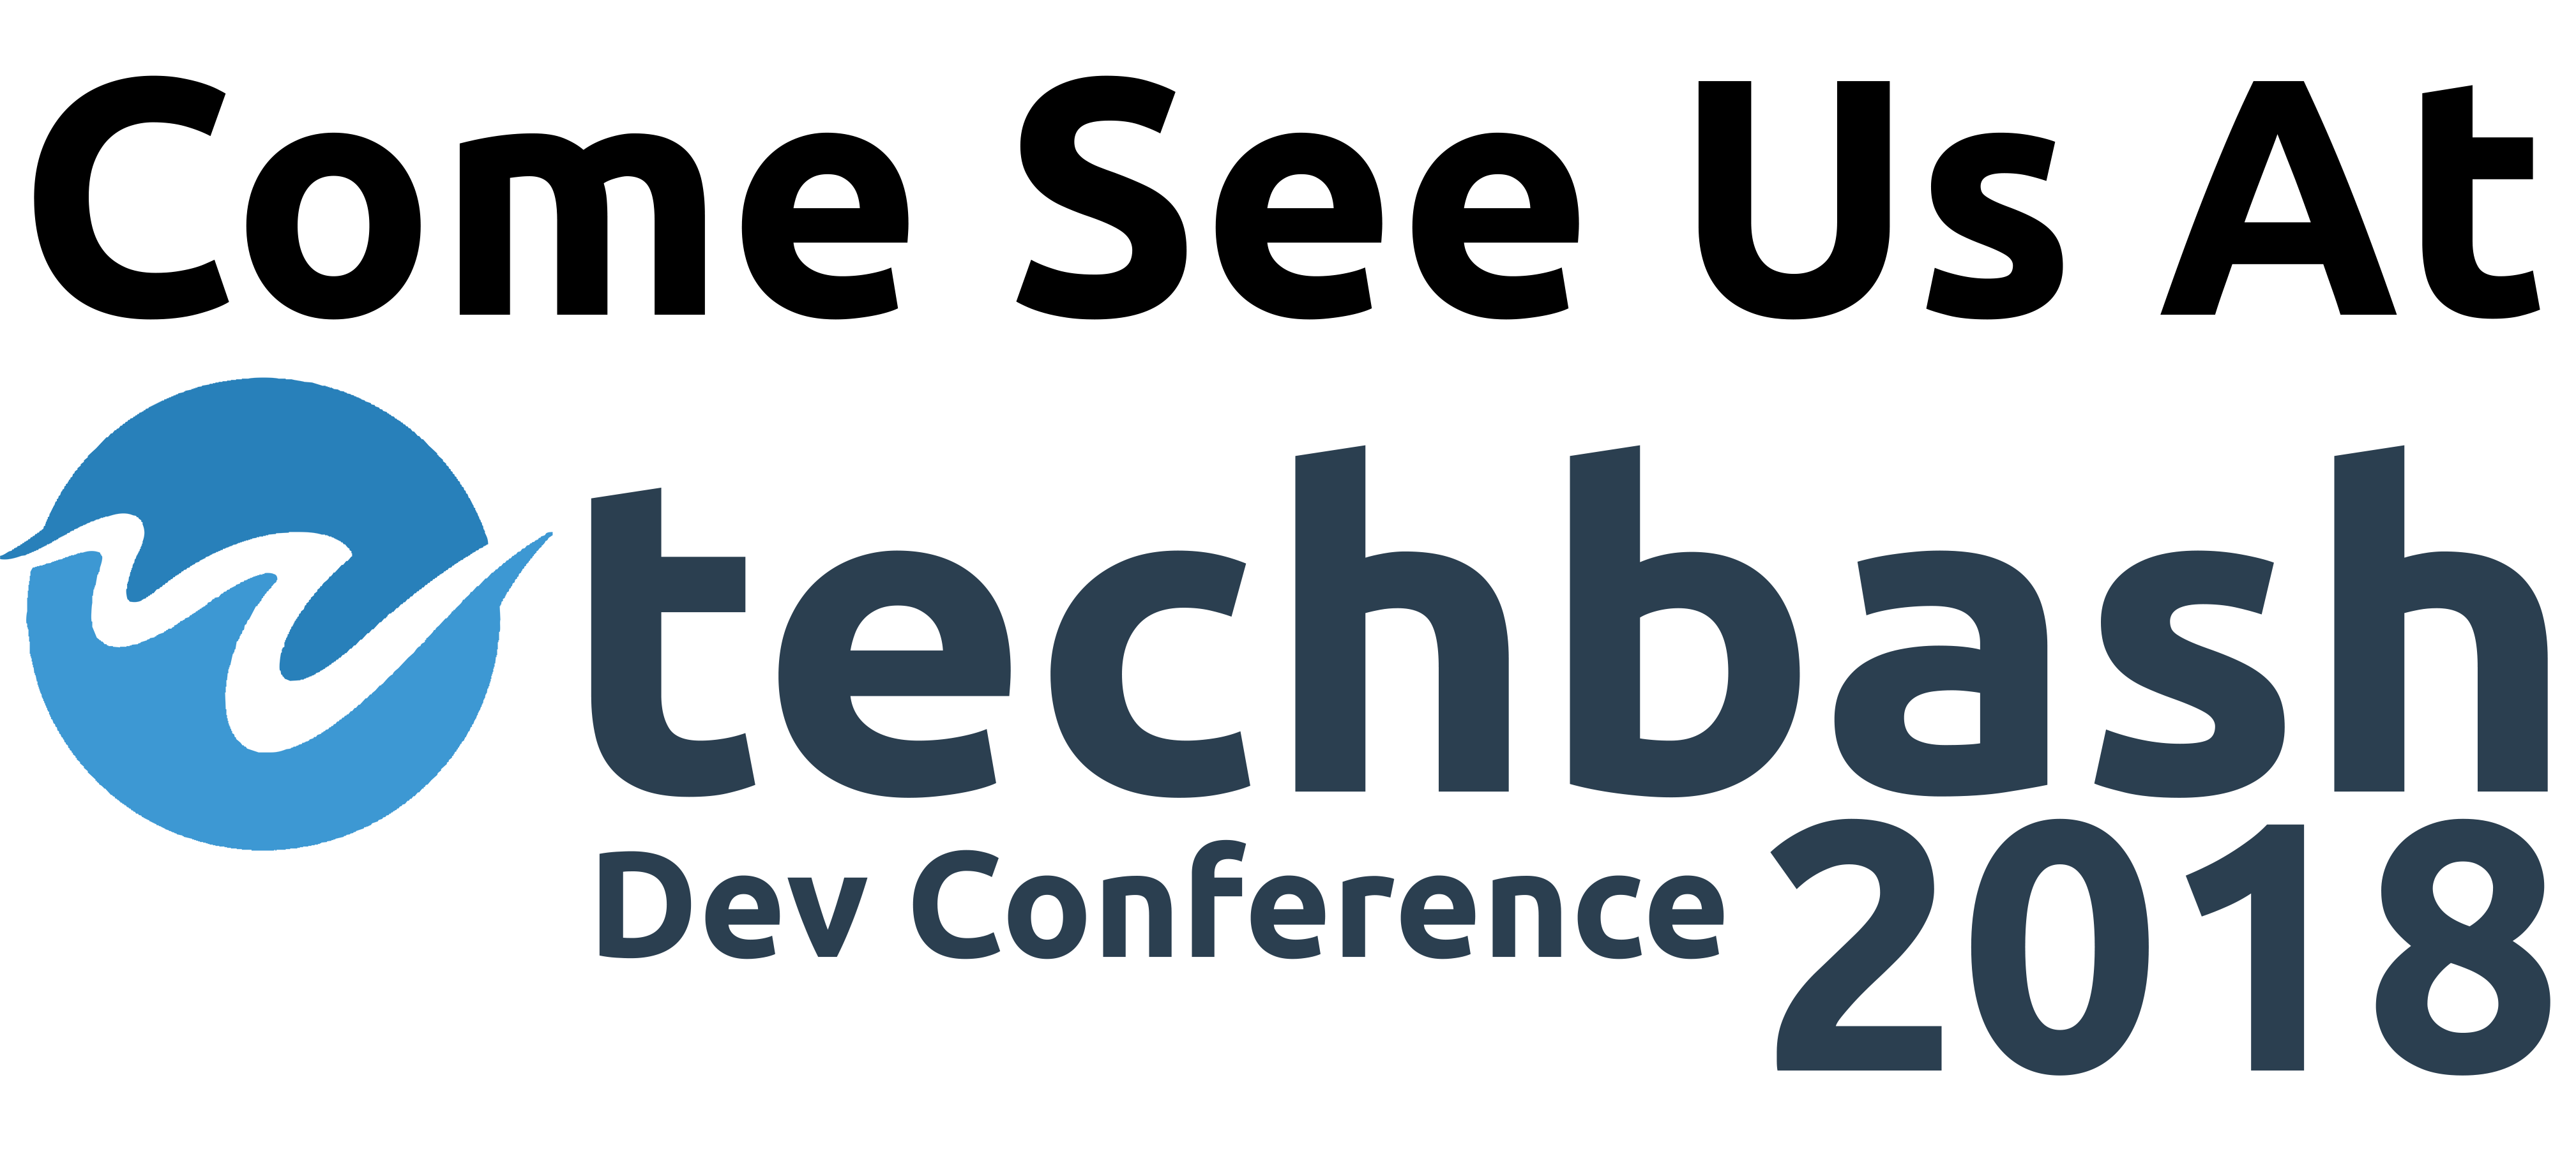 Come See Us at Techbash 2018